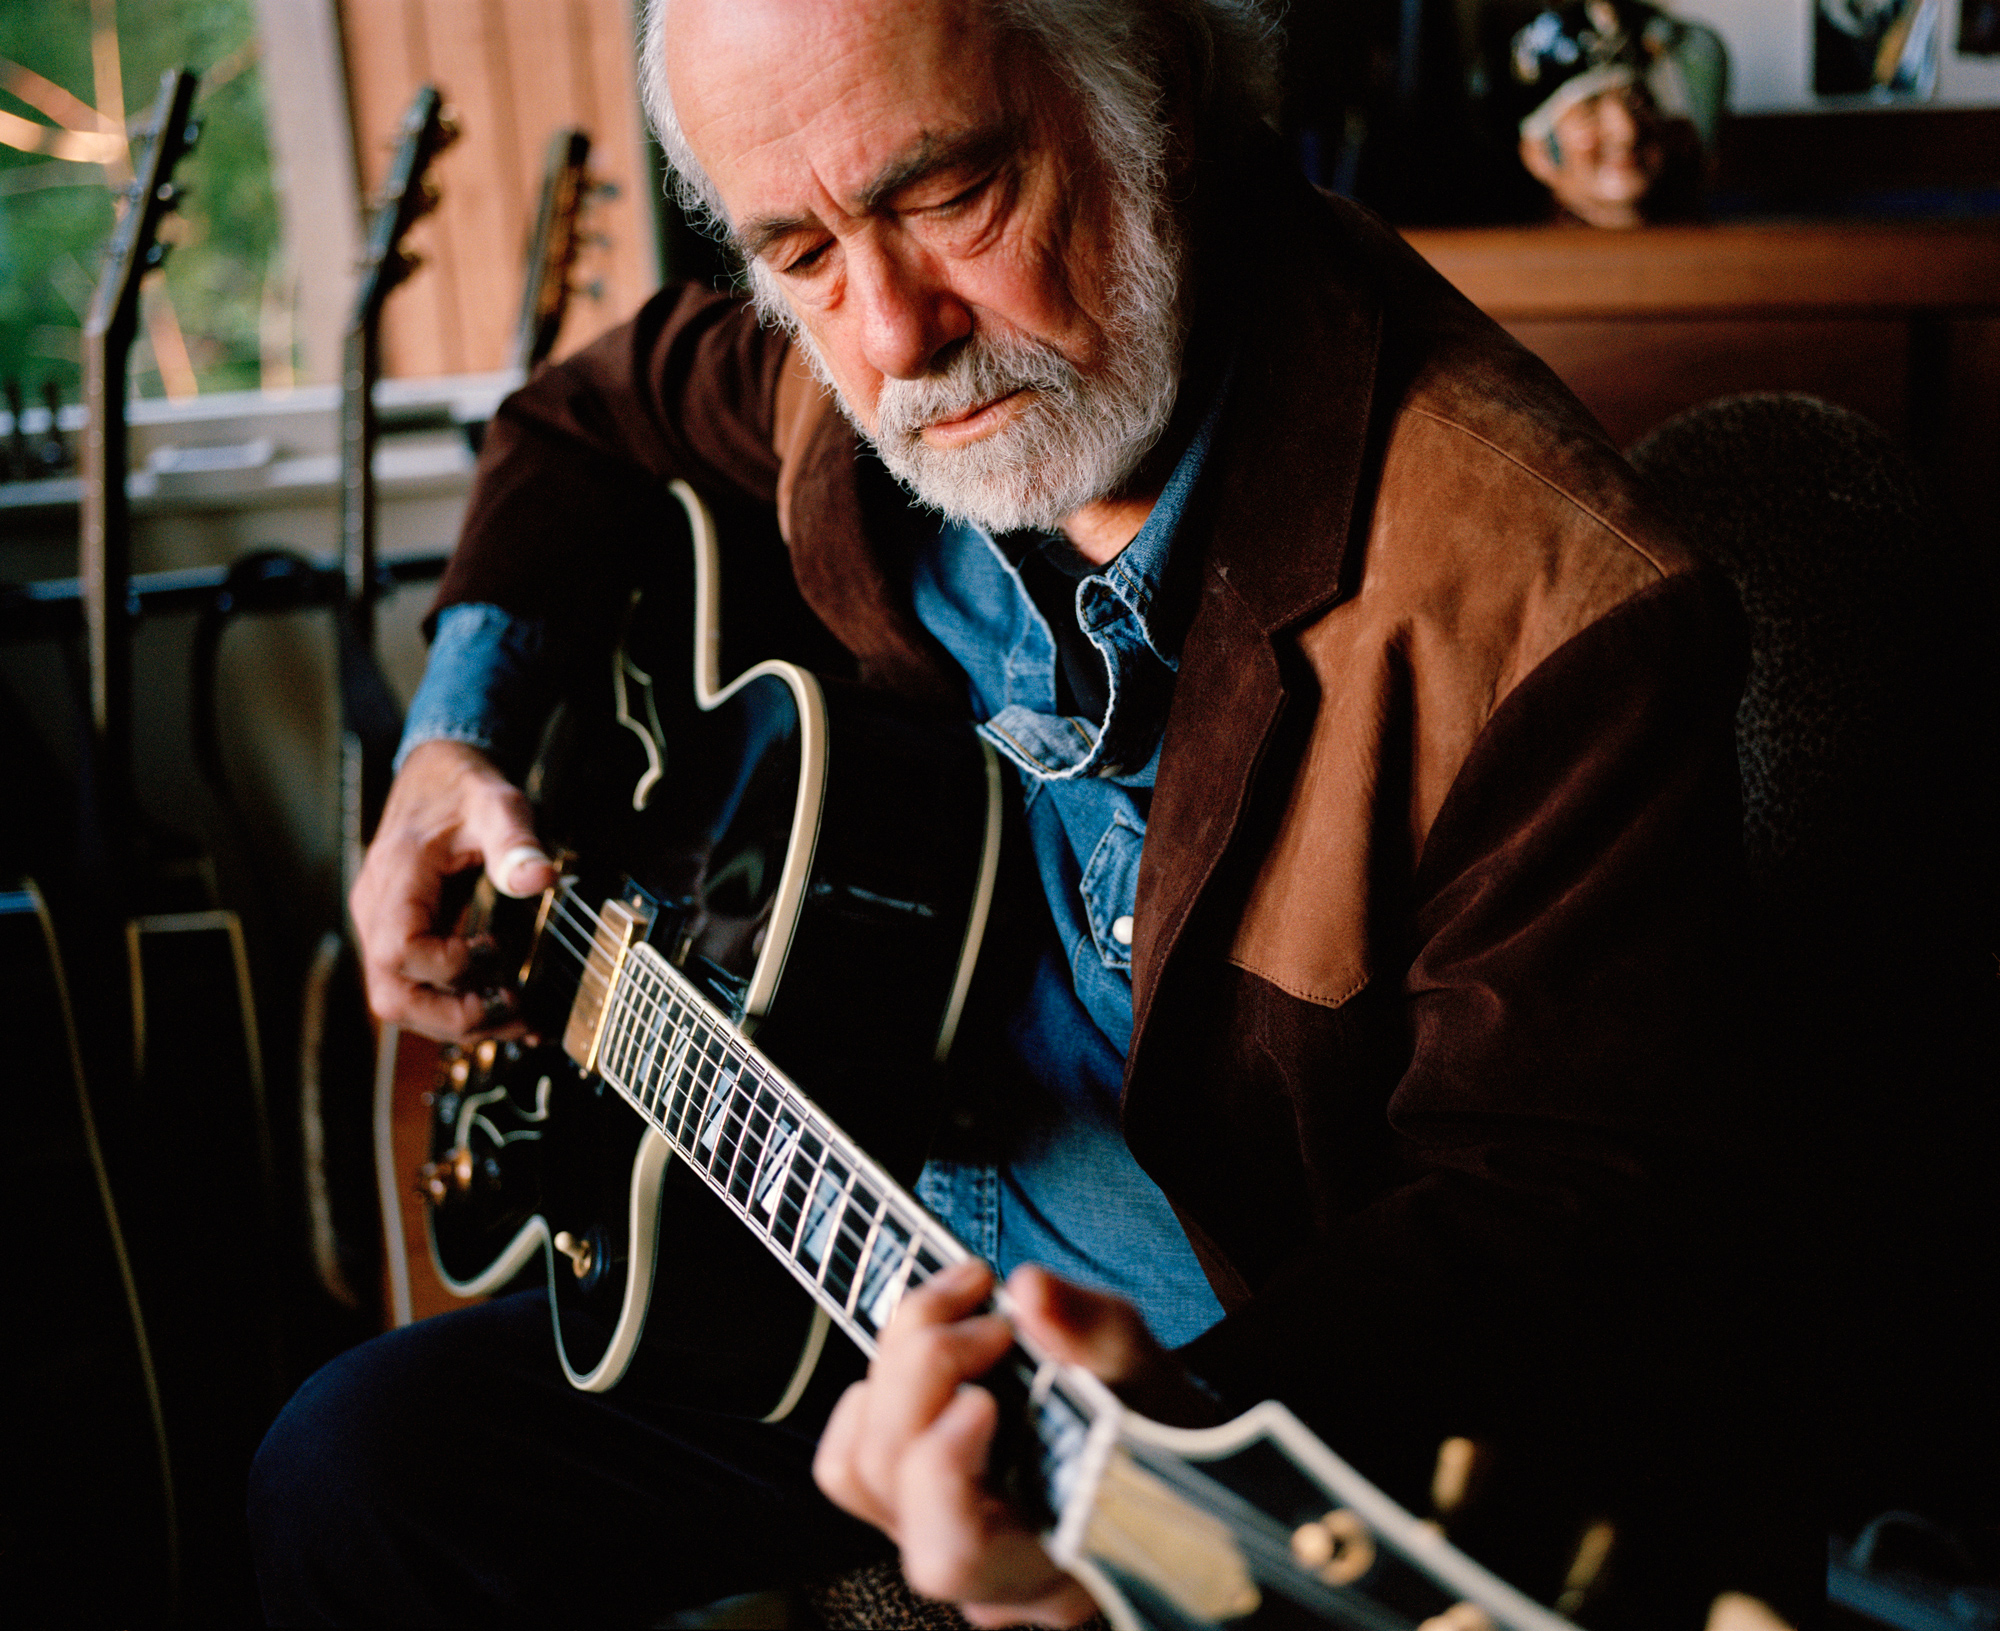 Robert Hunter on Grateful Dead's Early Days, Wild Tours, 'Sacred' Songs